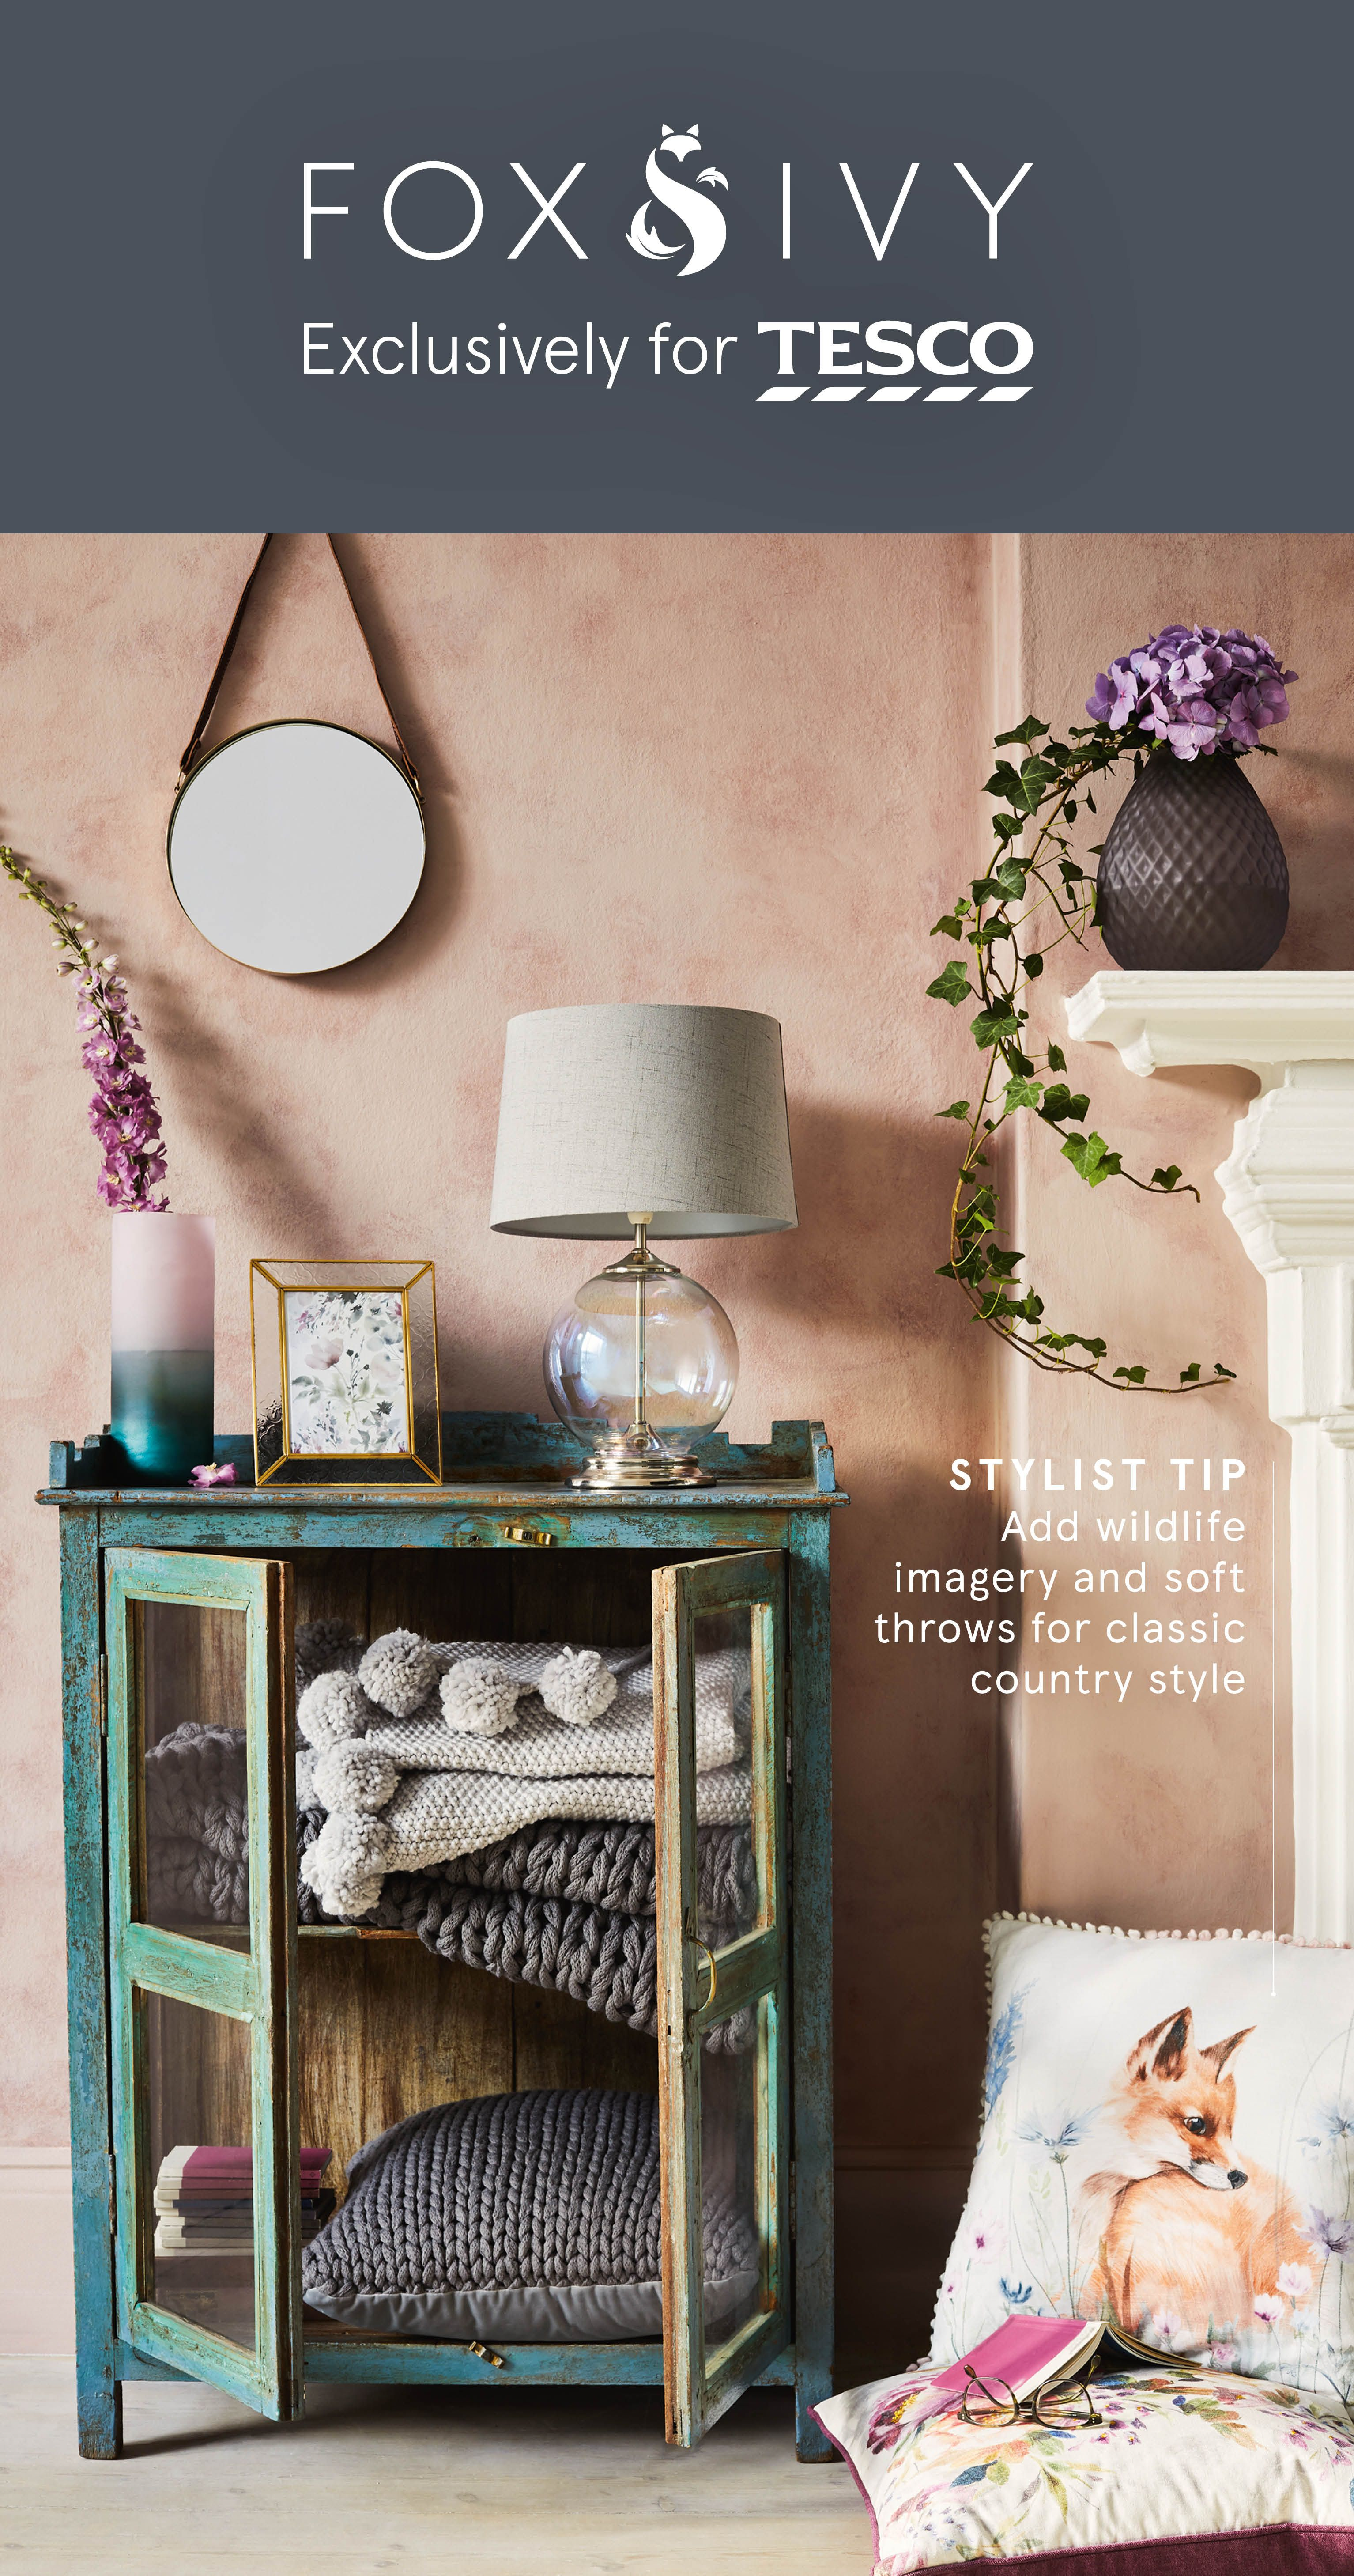 Discover the spring summer collection from fox ivy exclusively for tesco with elegant living room accessories in a range of luxurious materials